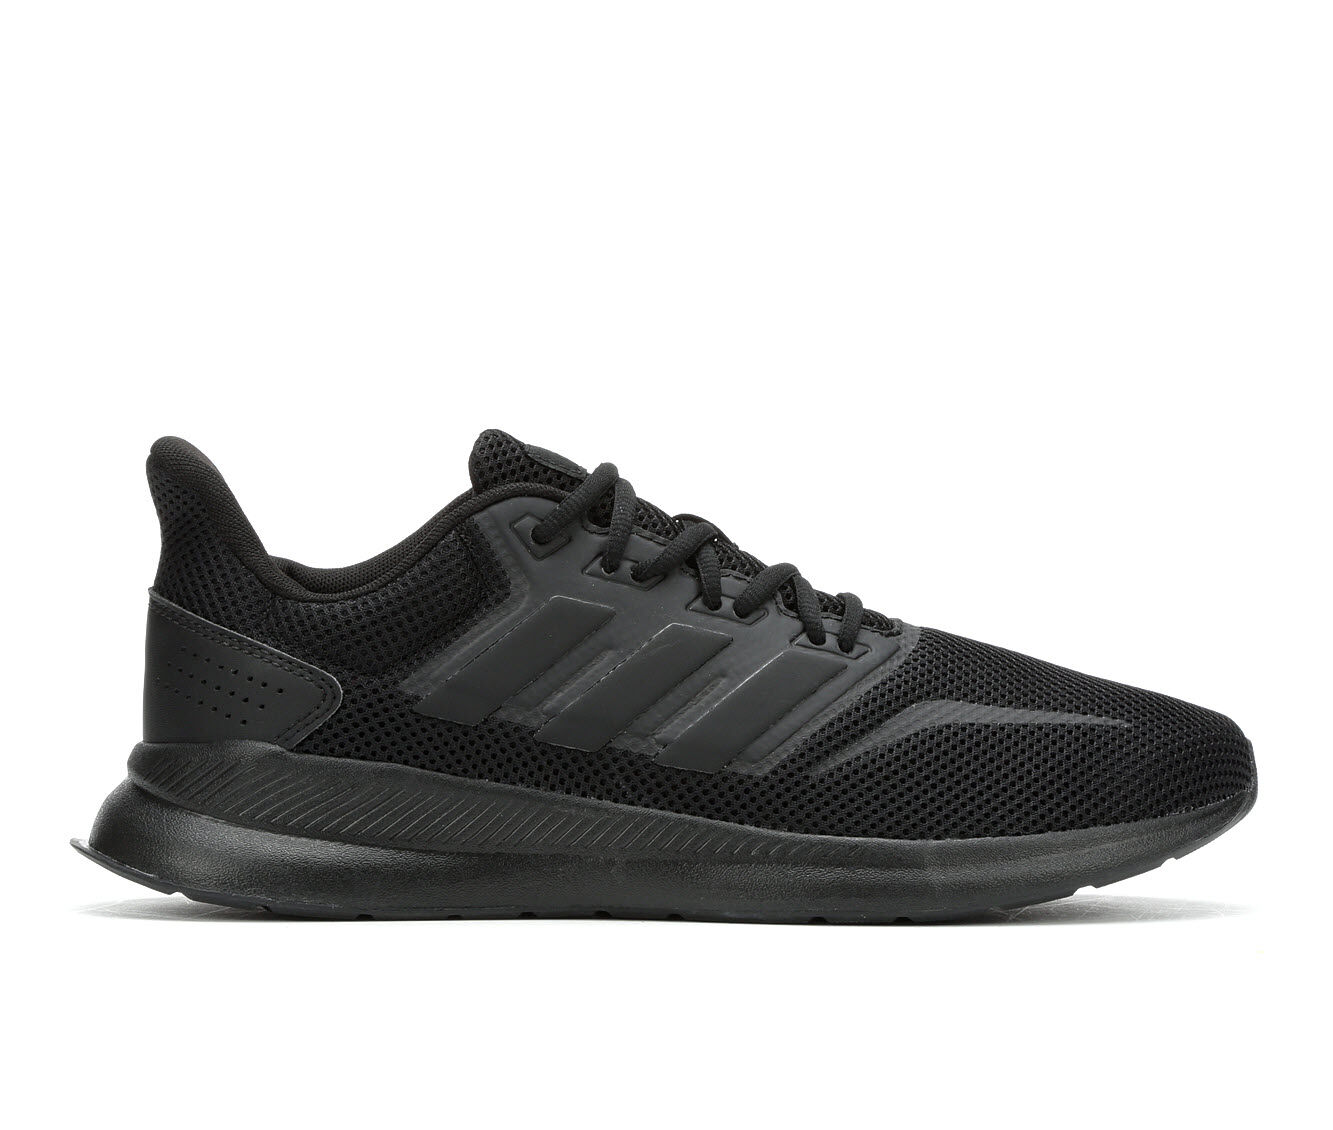 Reliable Men's Adidas Falcon Running Shoes Blk/Blk/Blk